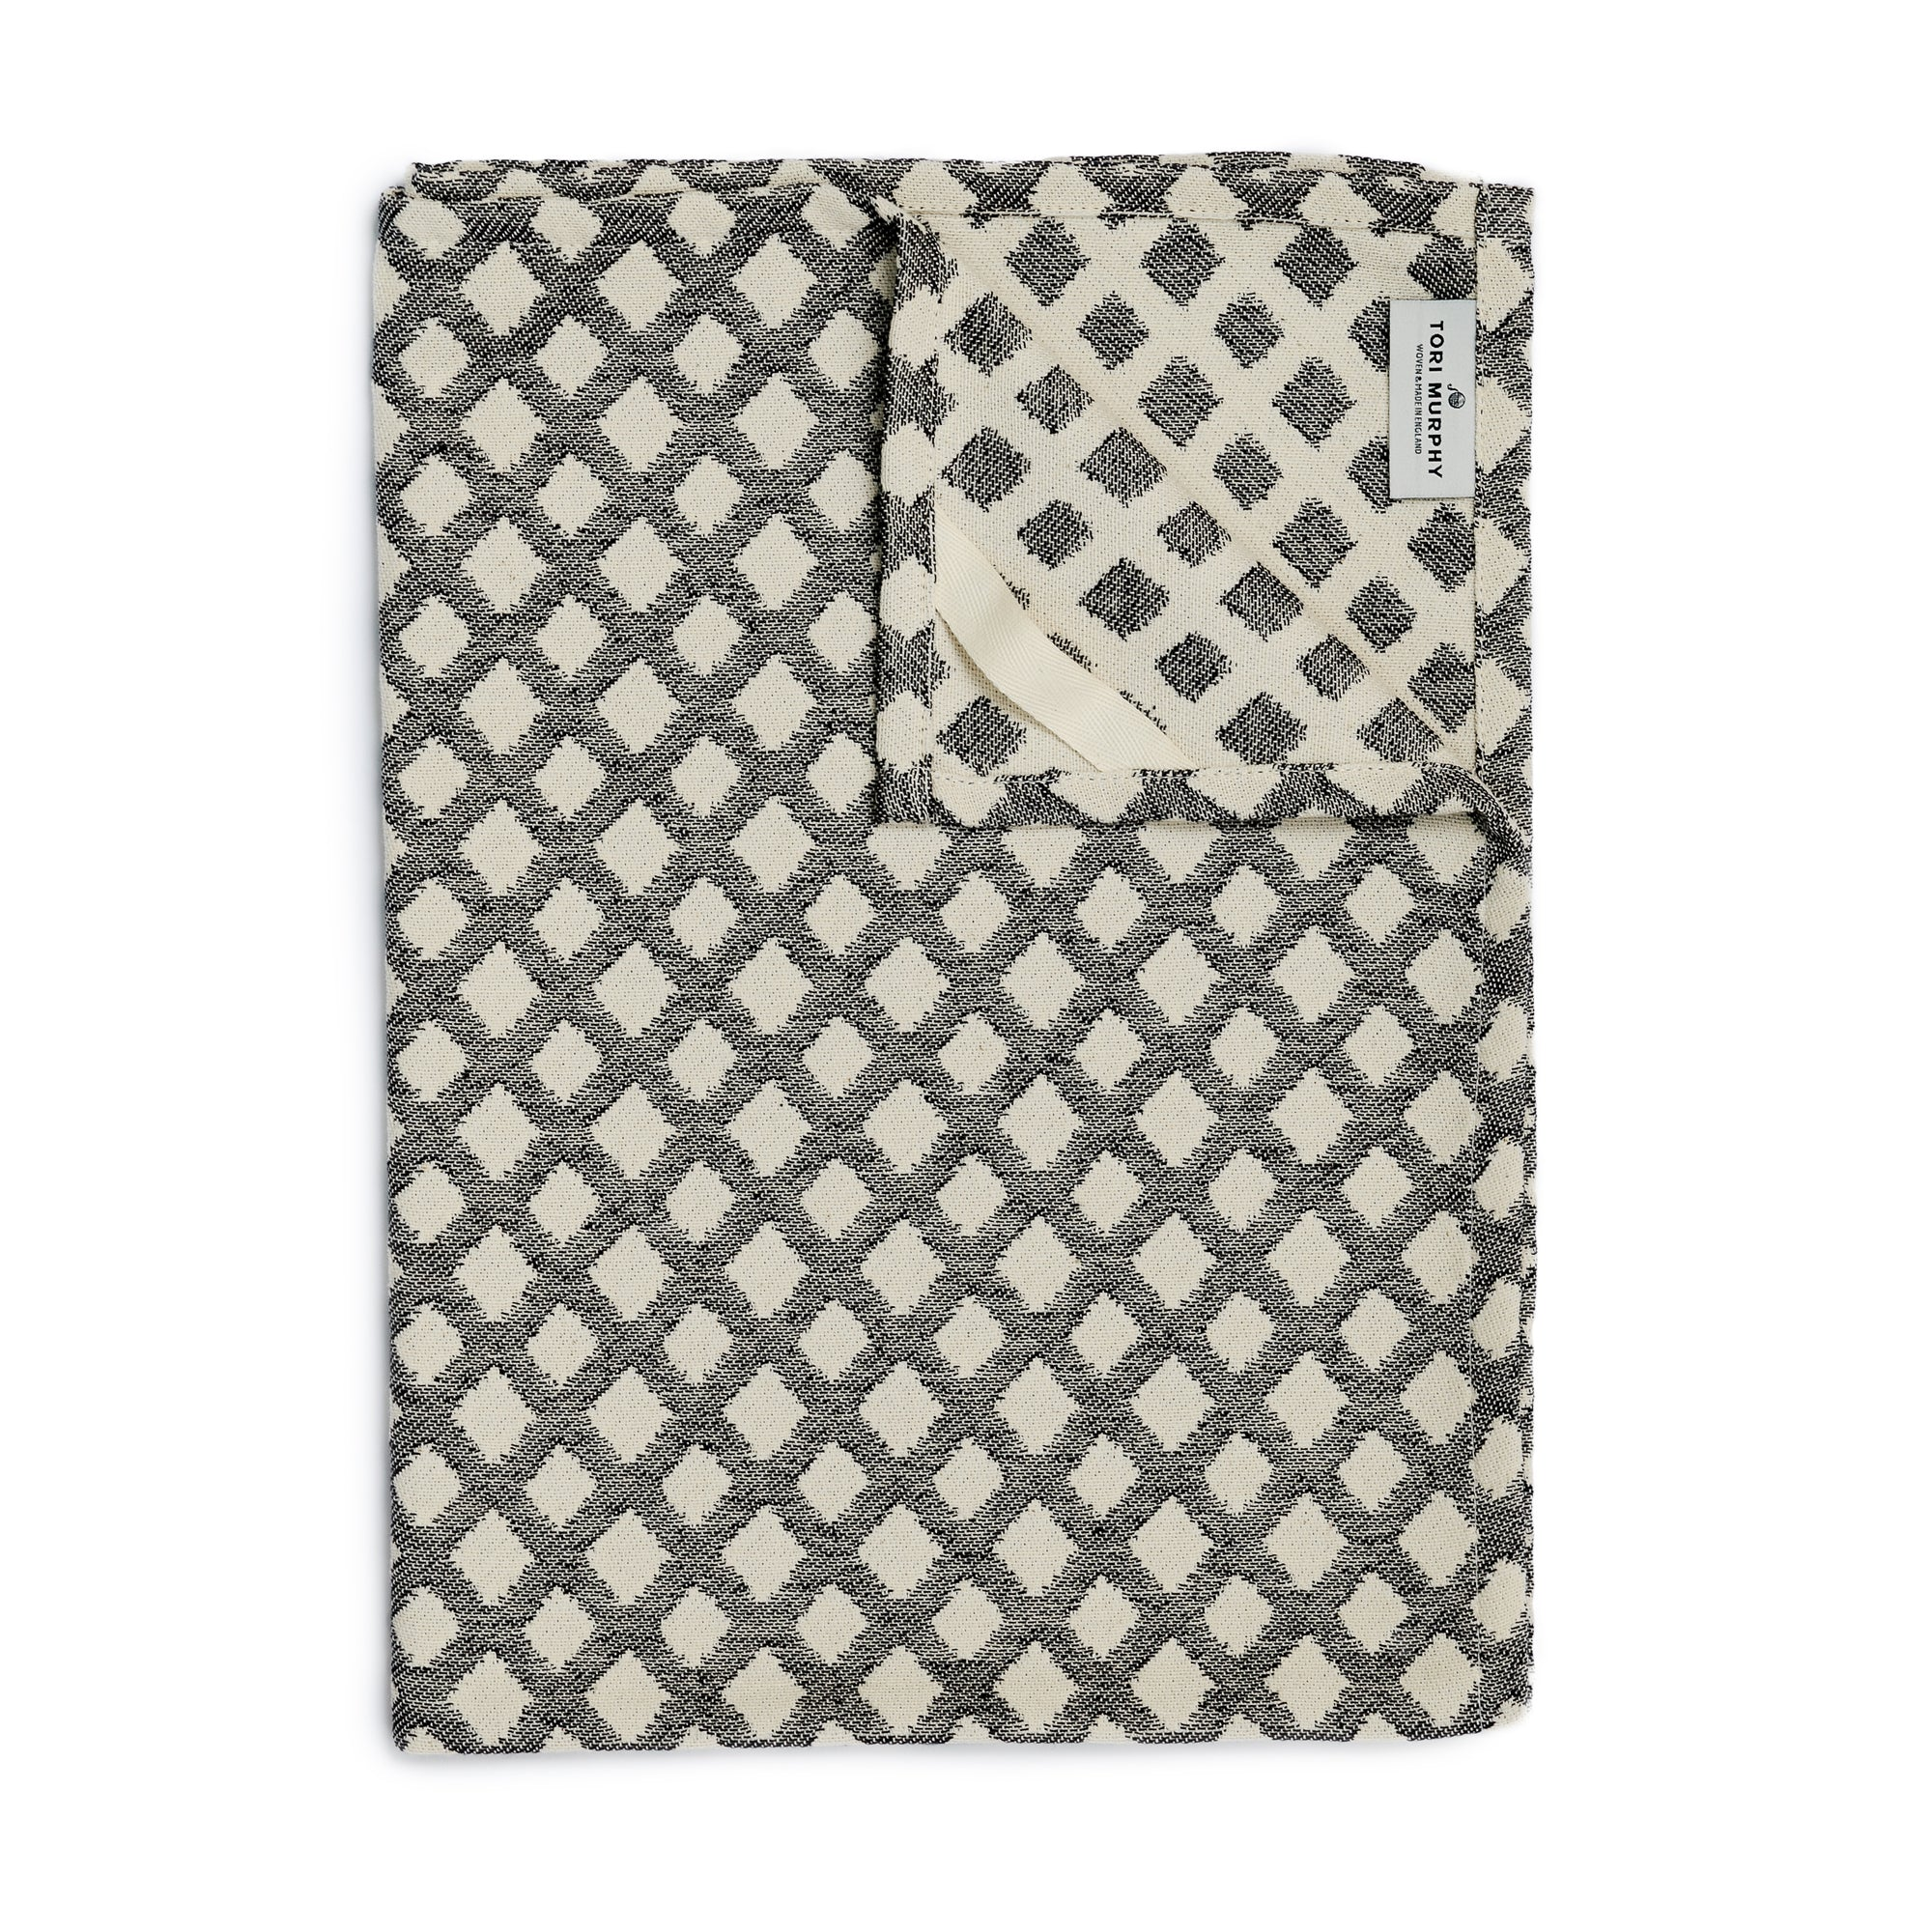 Cadogan Check Tea Towel Black